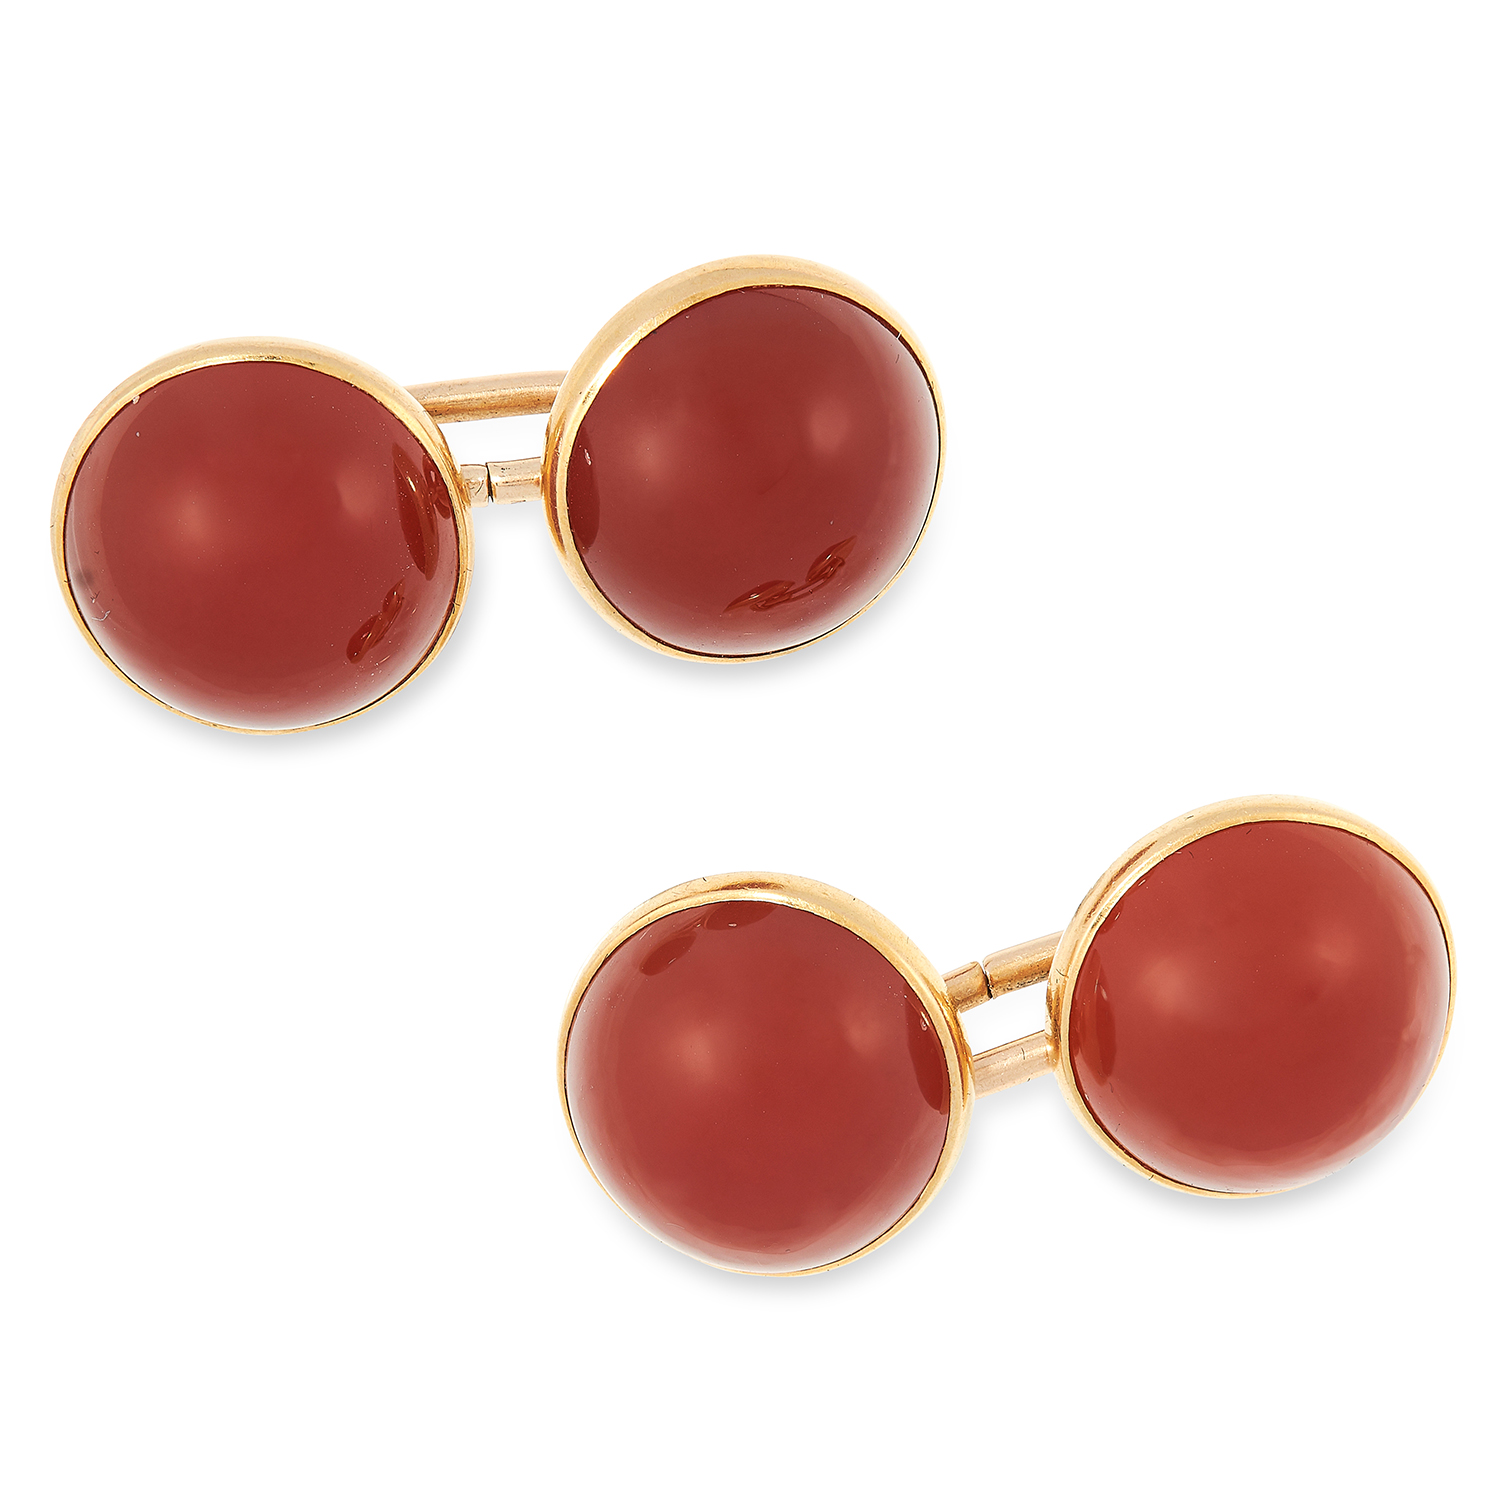 A PAIR OF ANTIQUE CARNELIAN CUFFLINKS each set with two carnelian cabochons, marked for 10ct